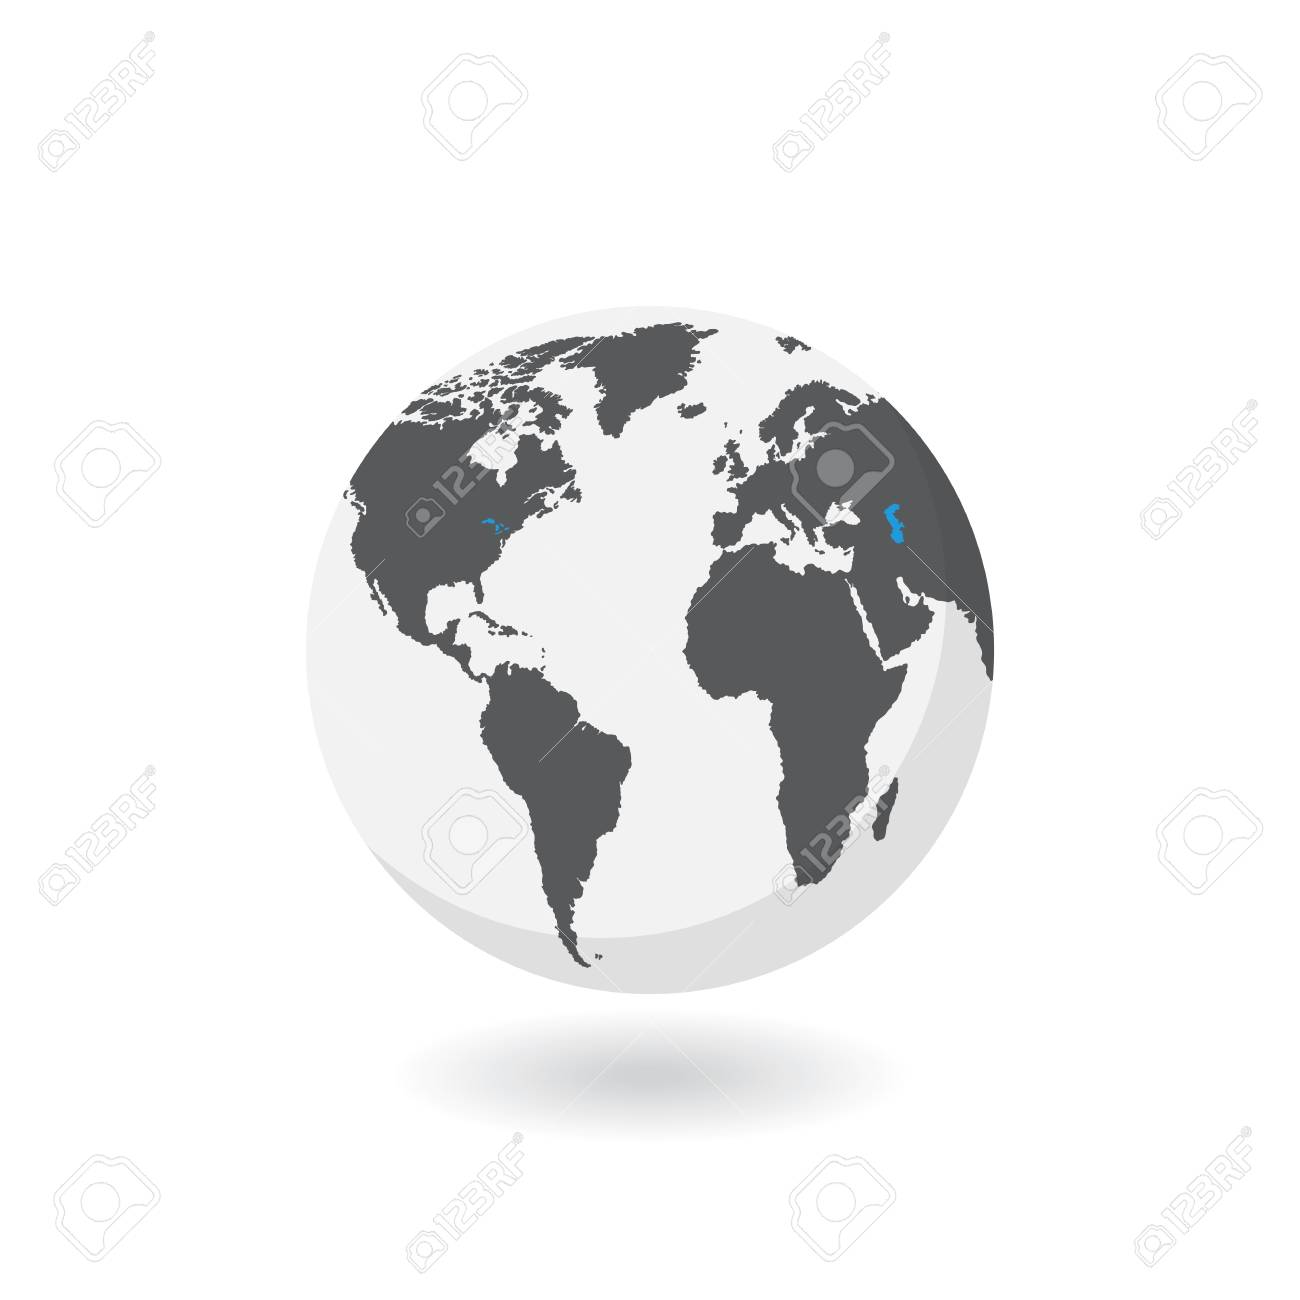 Earth globe icon vector world map isolated on white background earth globe icon vector world map isolated on white background stock vector gumiabroncs Gallery